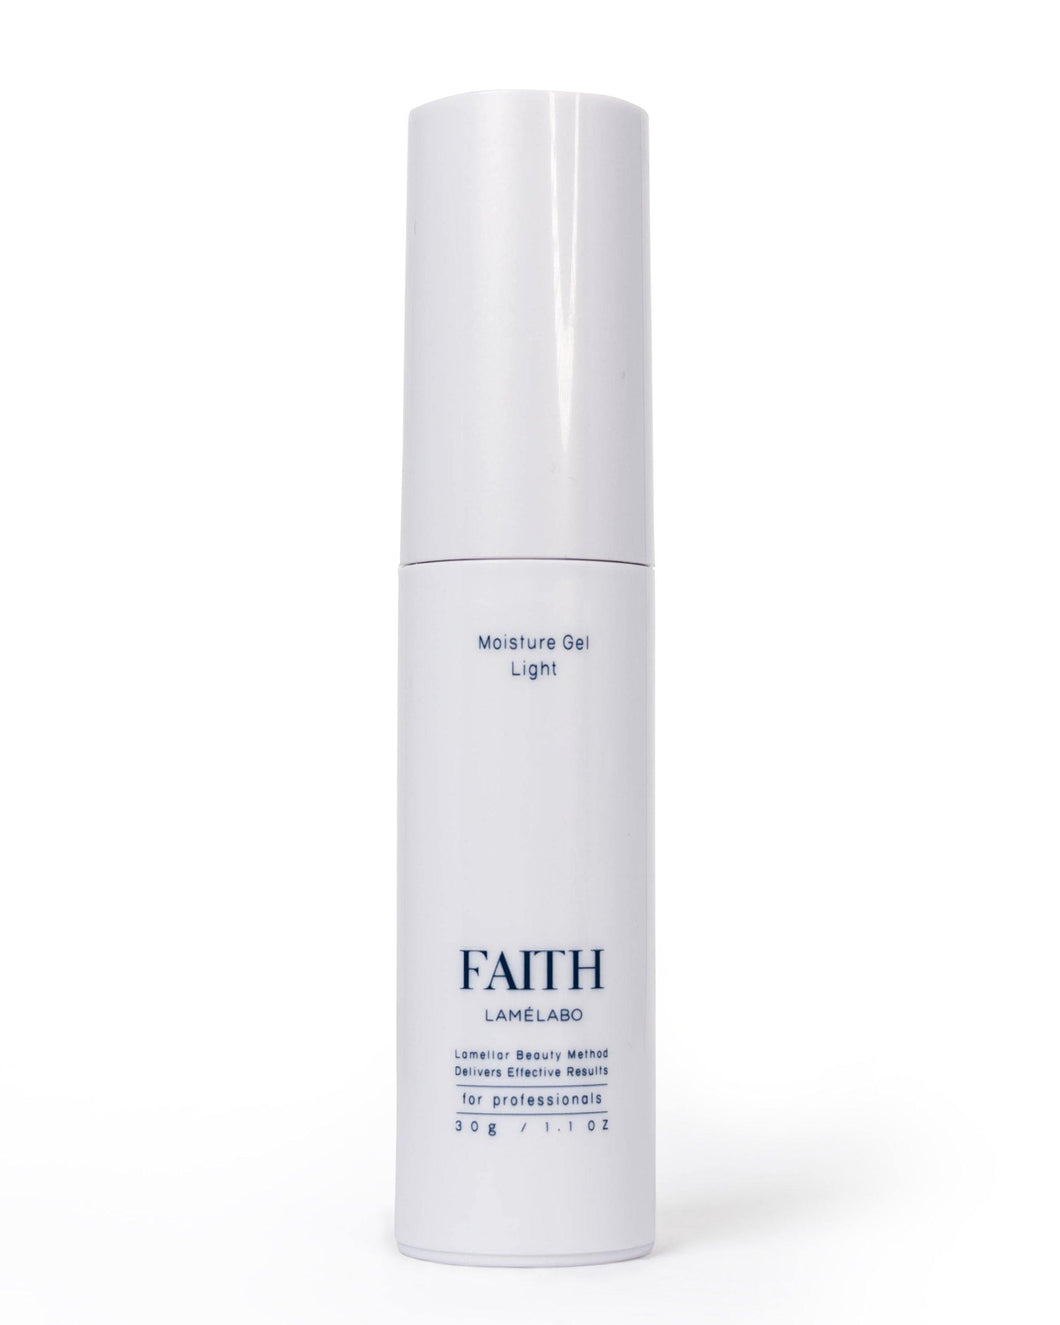 Faith LAMÉLABO Moisture Gel Light - Emerage Cosmetics